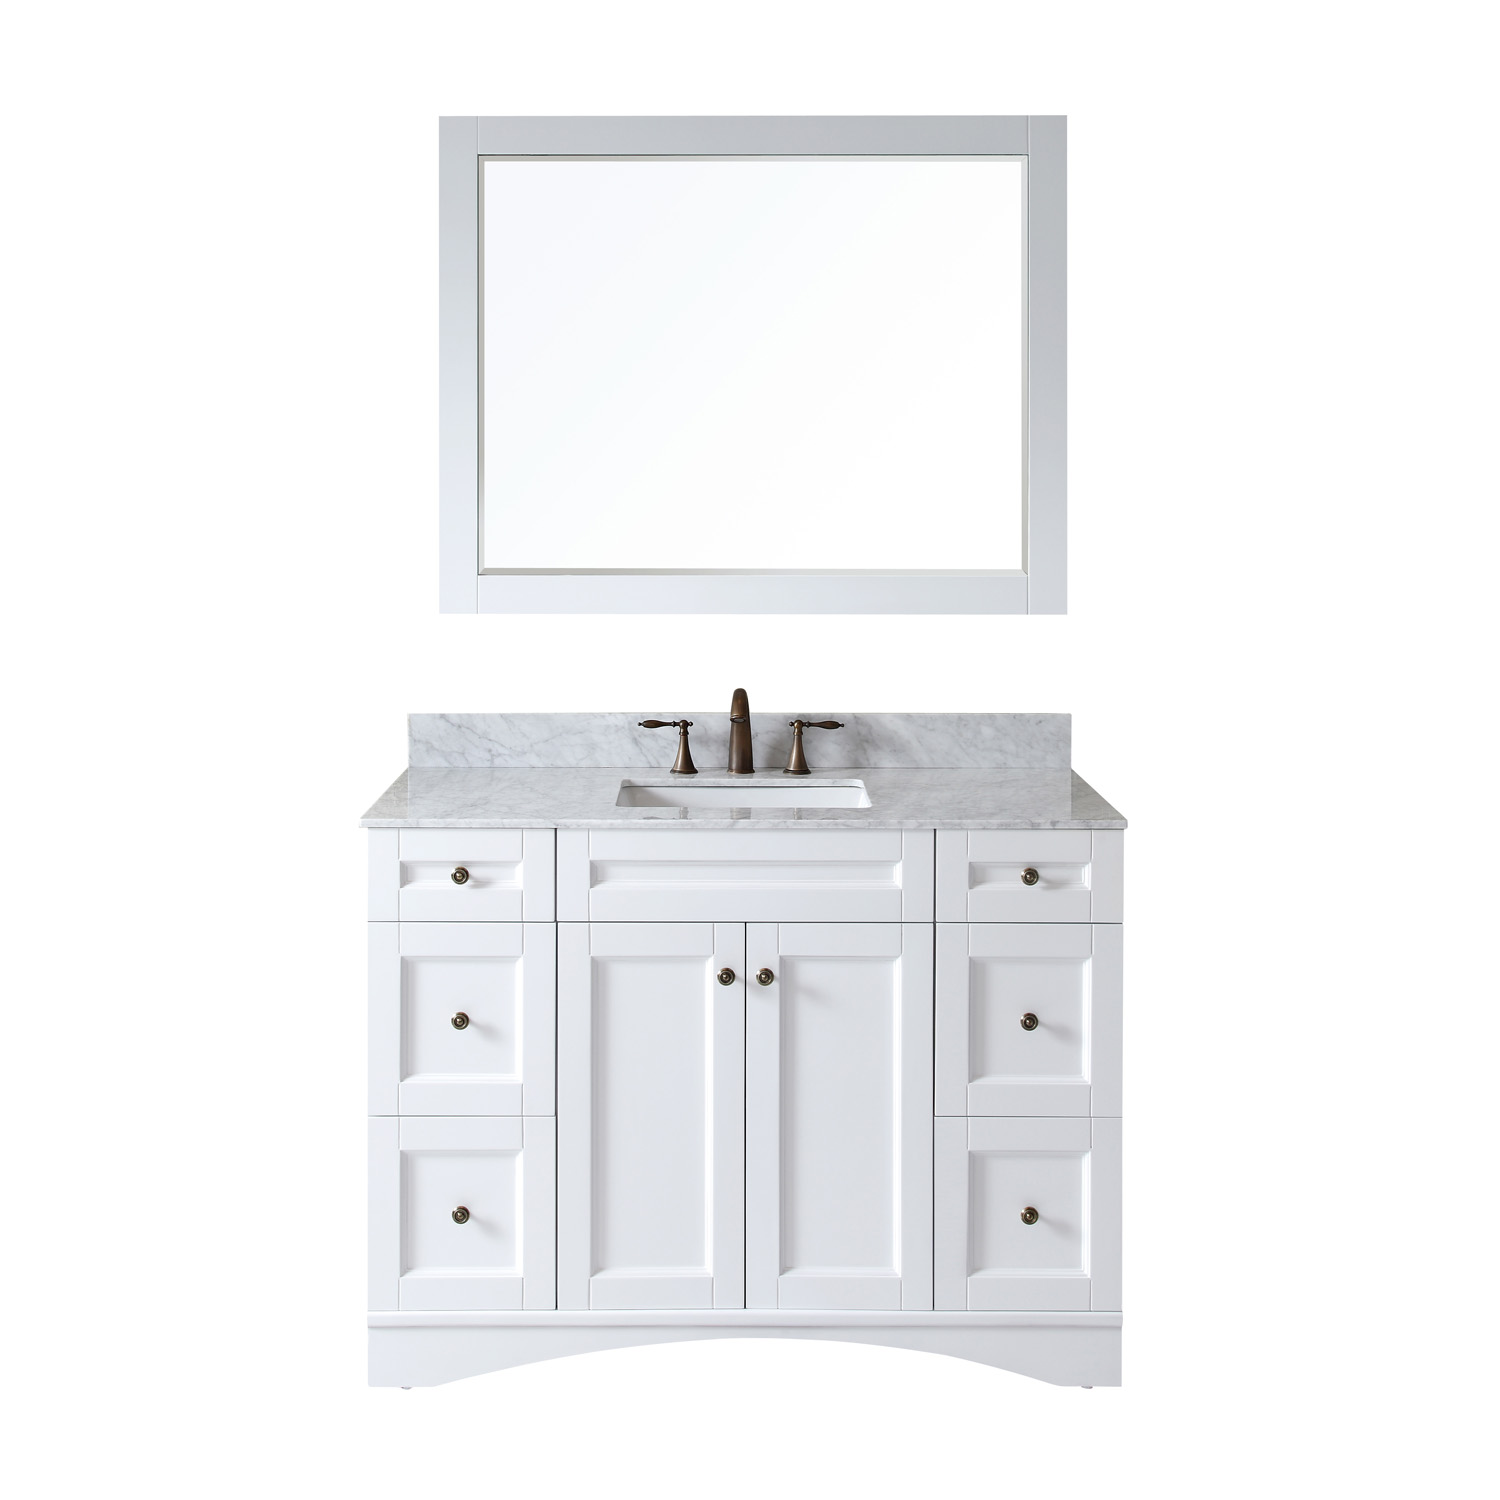 "48"" Single Bath Vanity in White Finish with Top, Sink and Mirror Options"